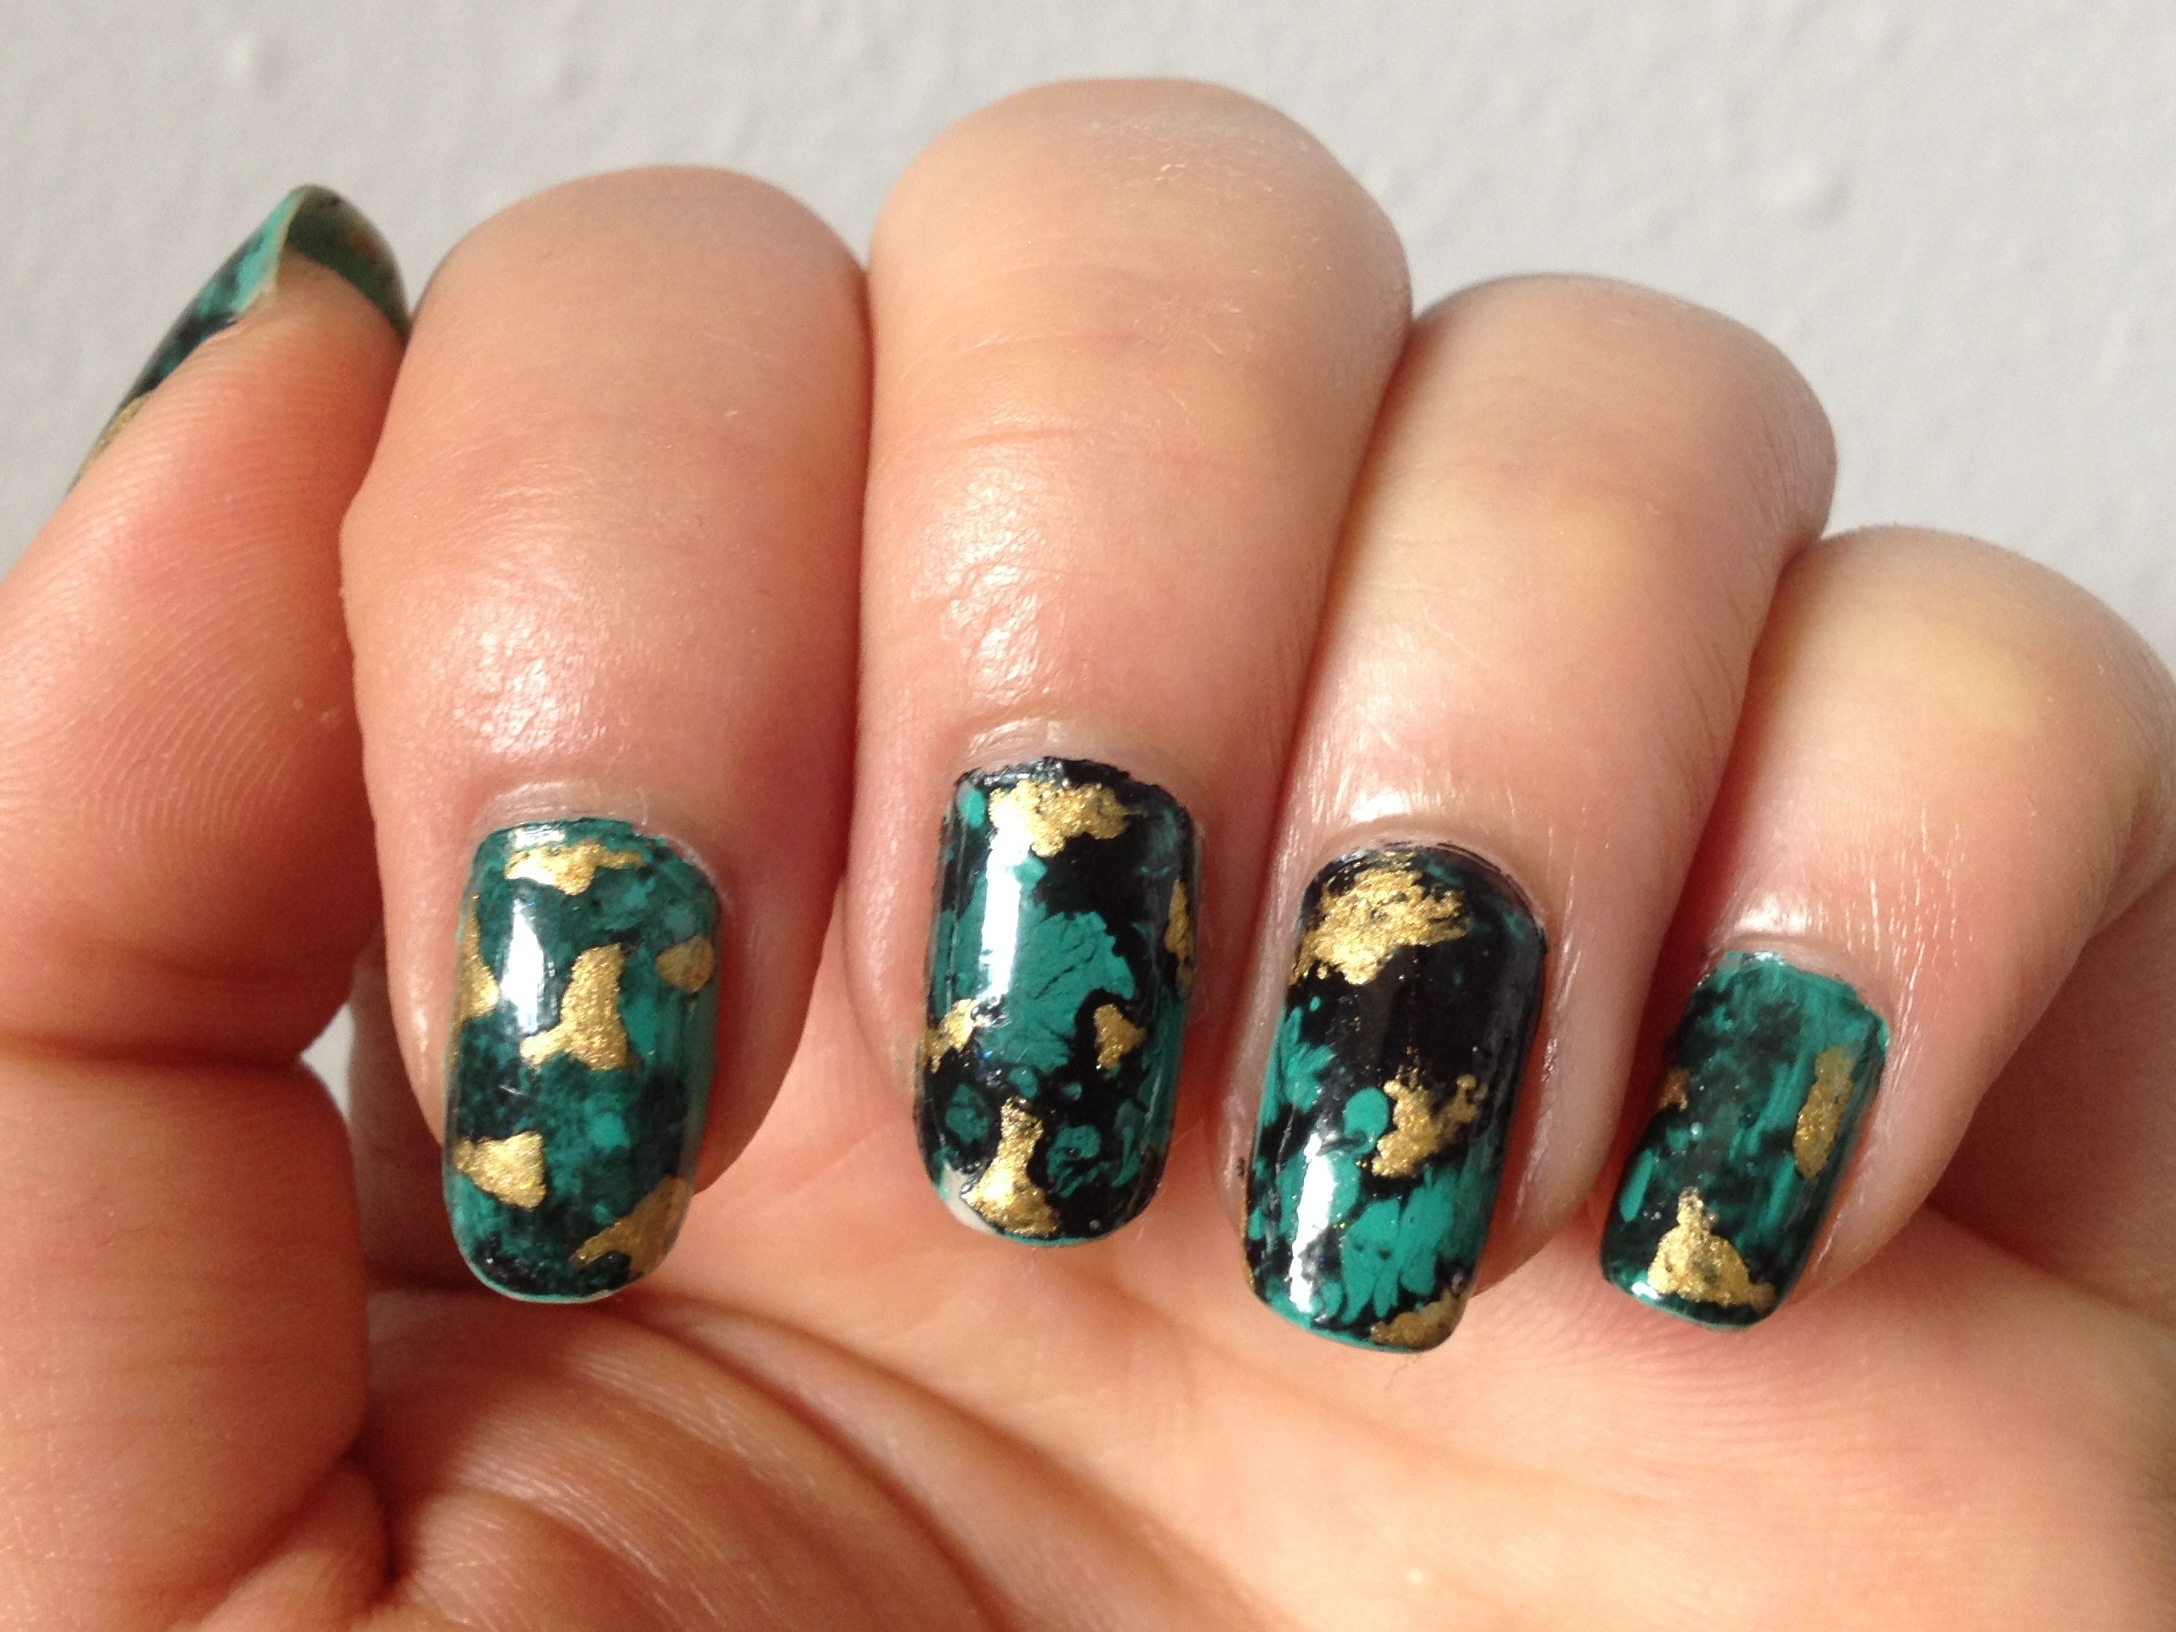 Water Nail Art: NOTD: Gold Flecked Turquoise Water Spotted Nails & Nail